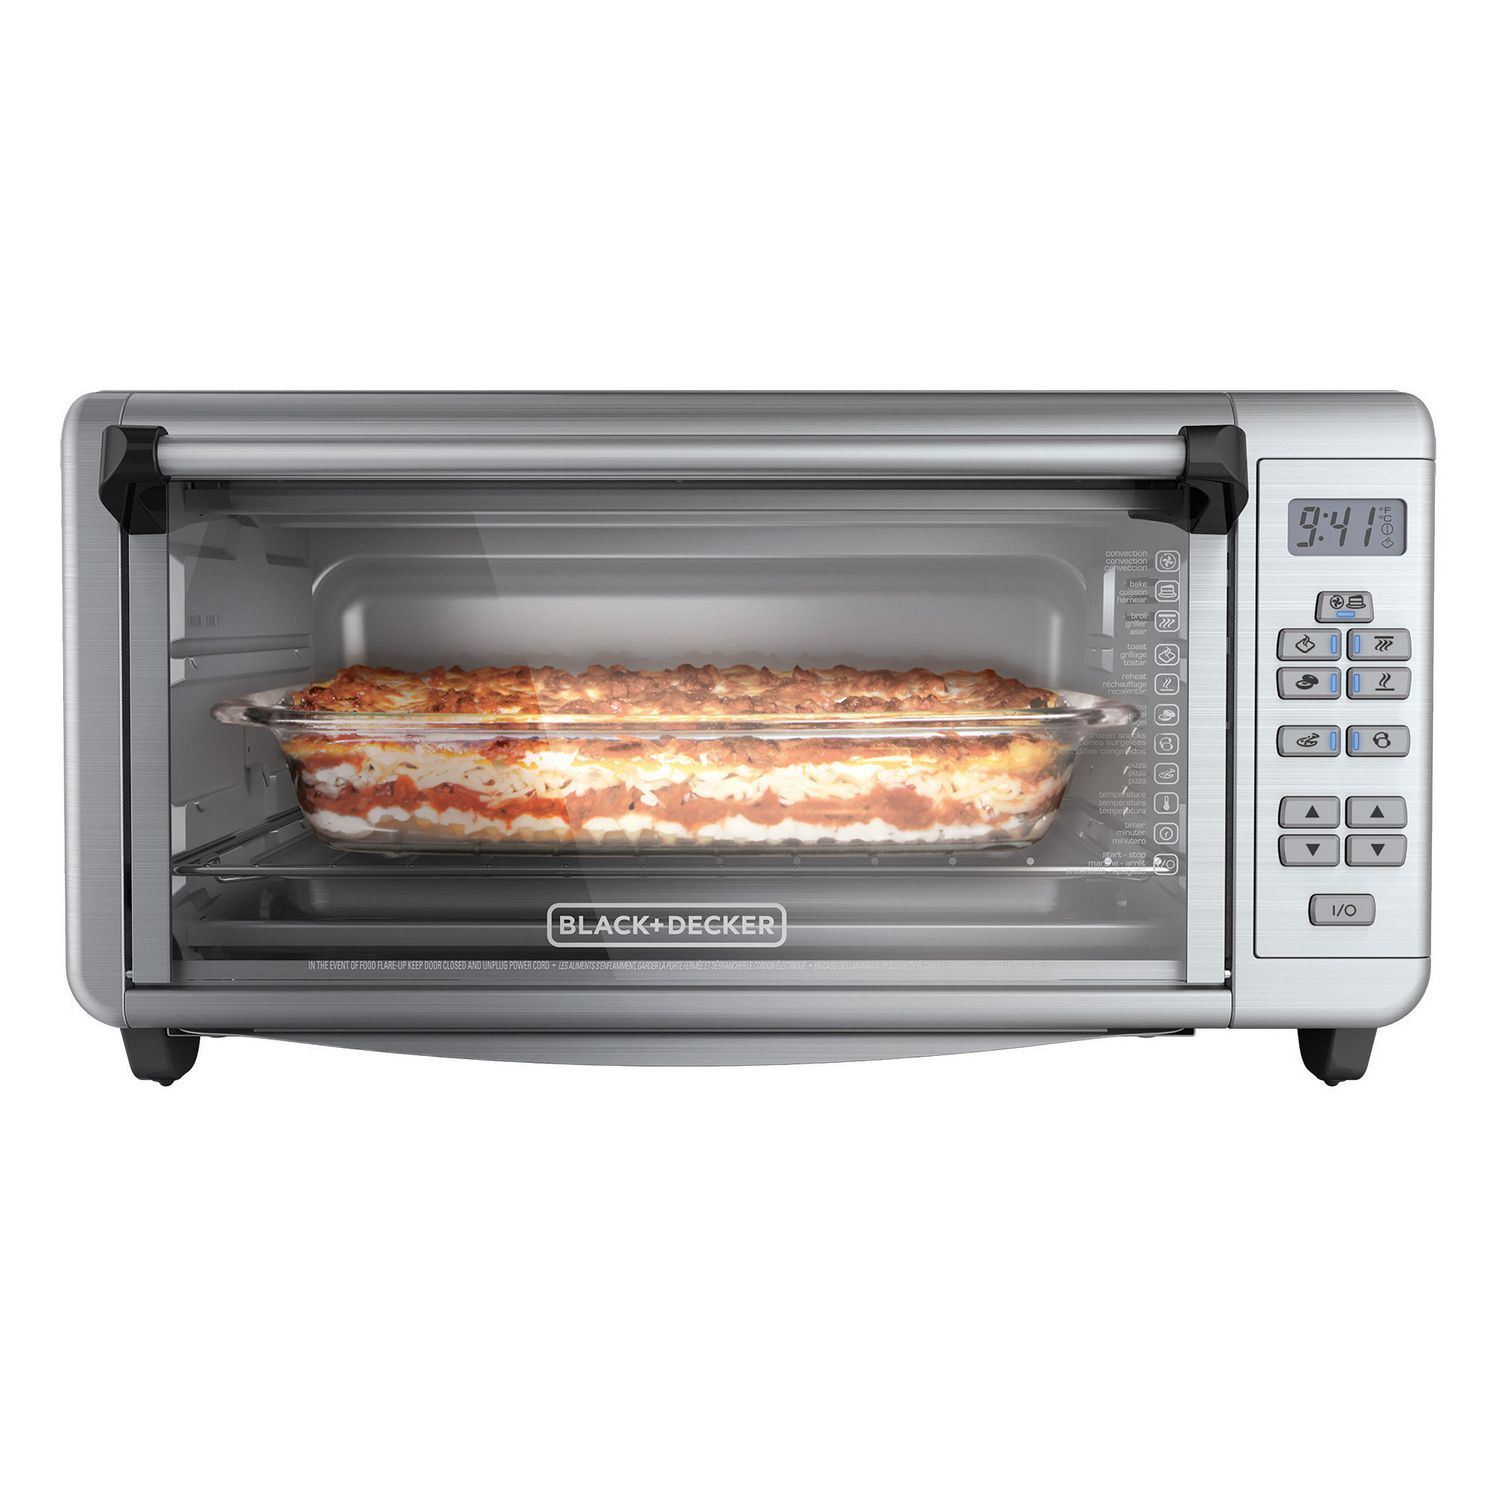 toaster ca ovens best steel ft canada smart mini oven product breville stainless sale for buy cu en